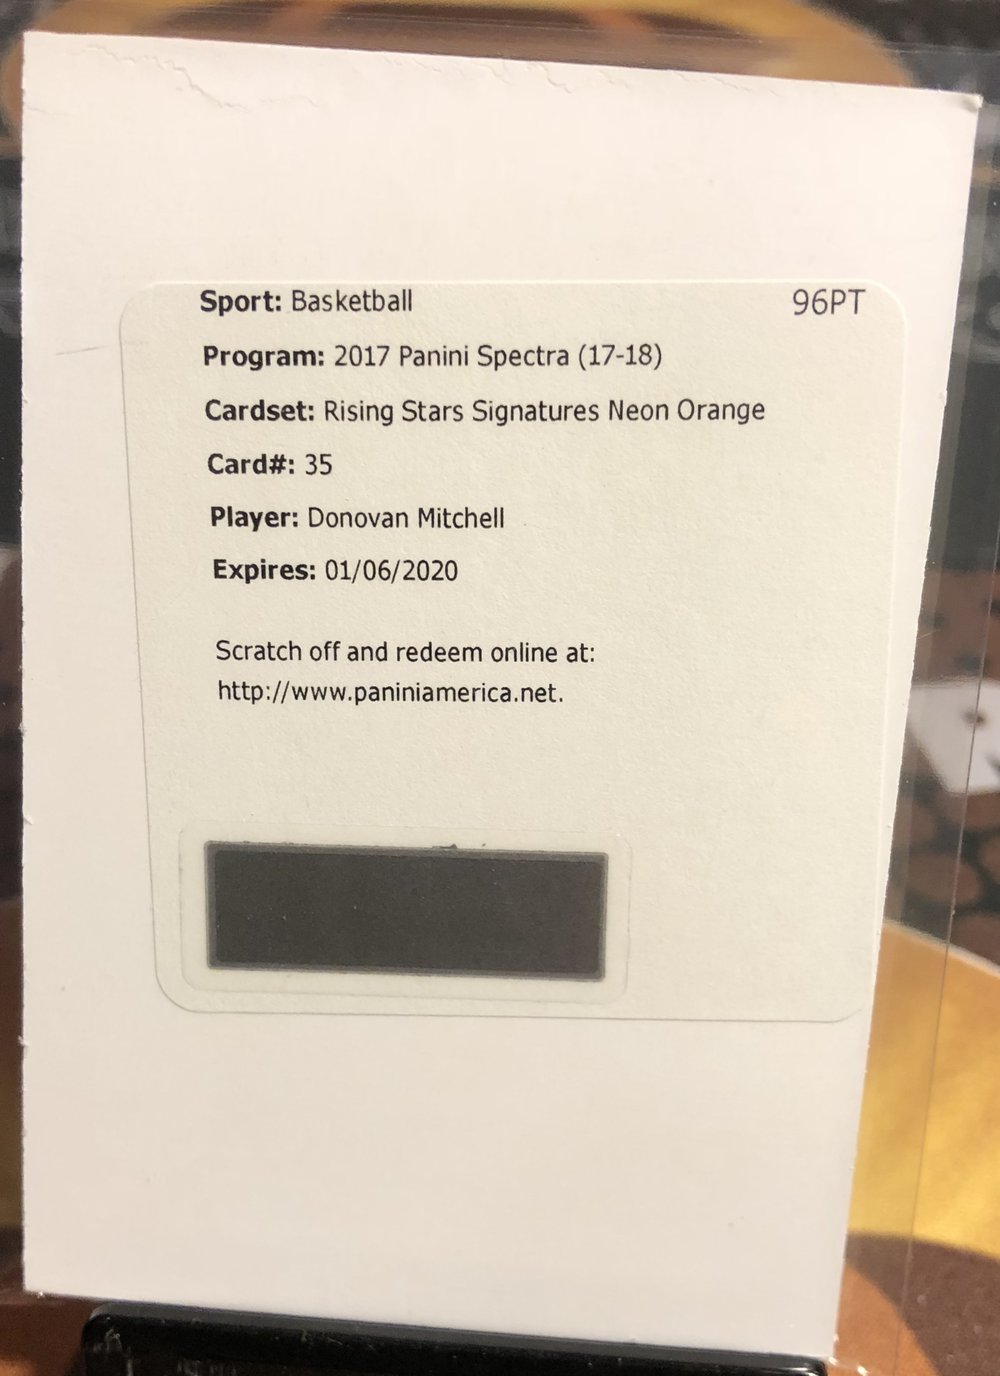 2017-18 Panini Spectra Donovan Mitchell Rising Stars Signatures Orange /5